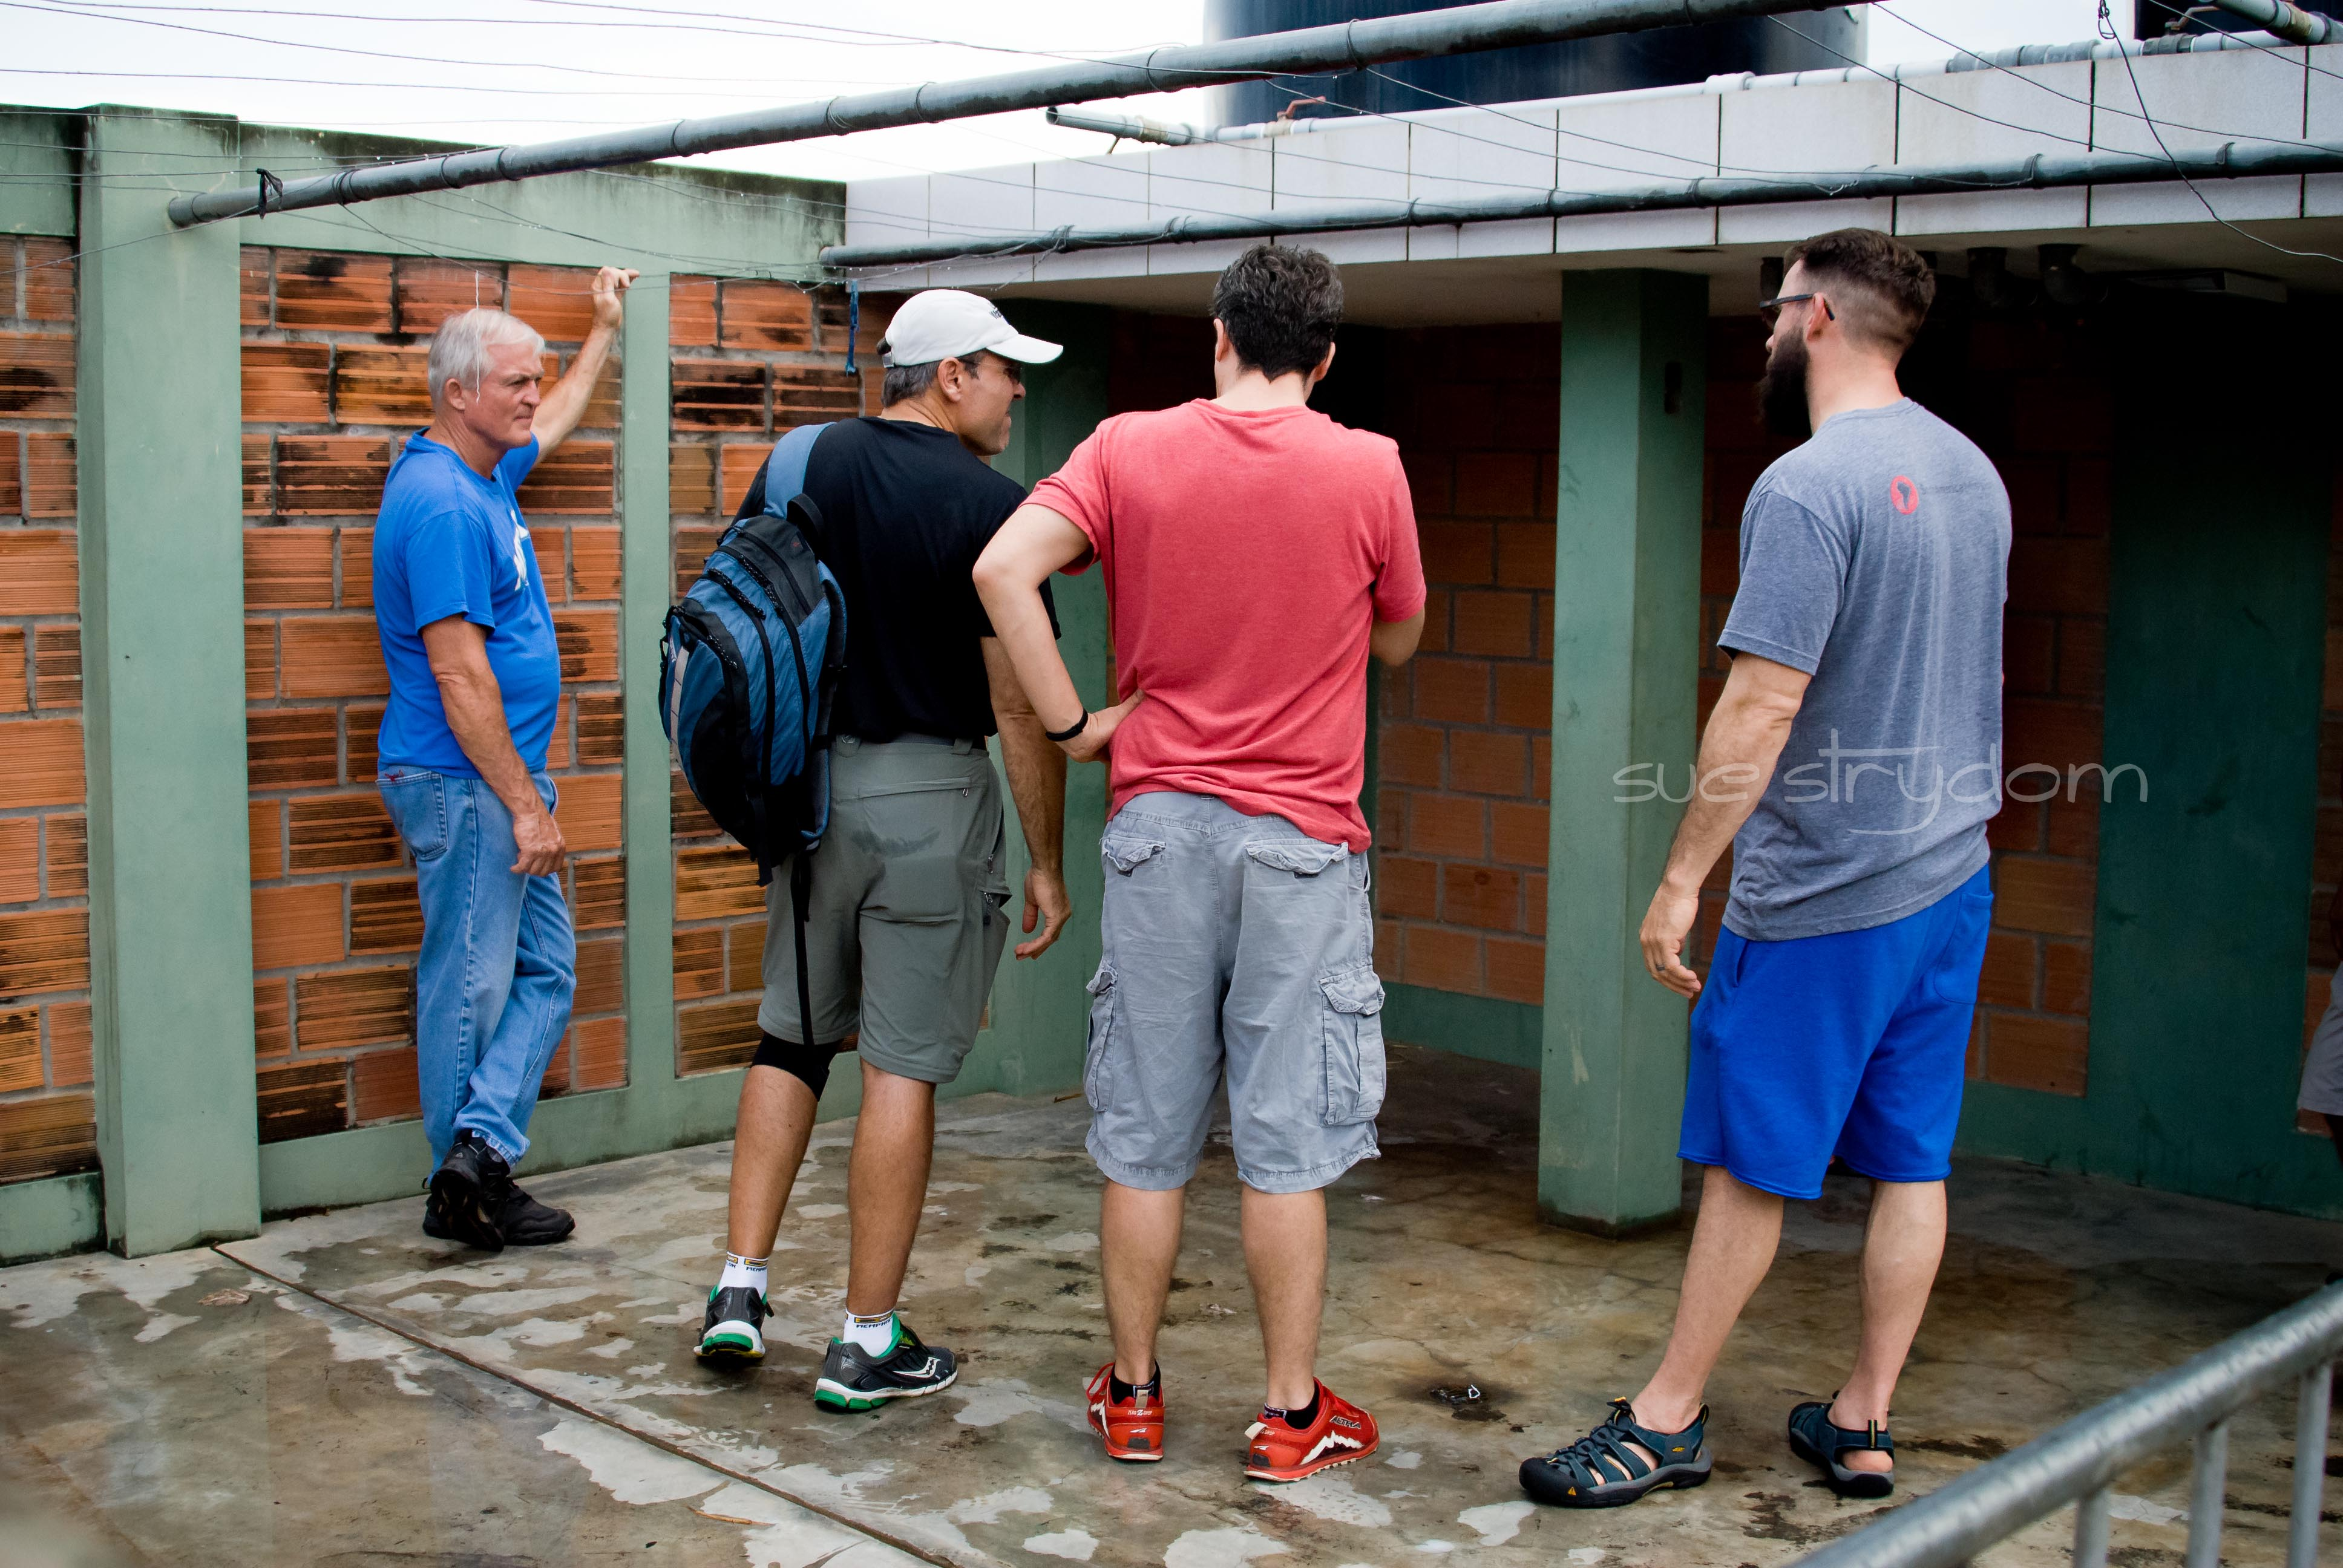 The boys transitioned up to the roof to check out the location of where they'll be installing the clean water system.